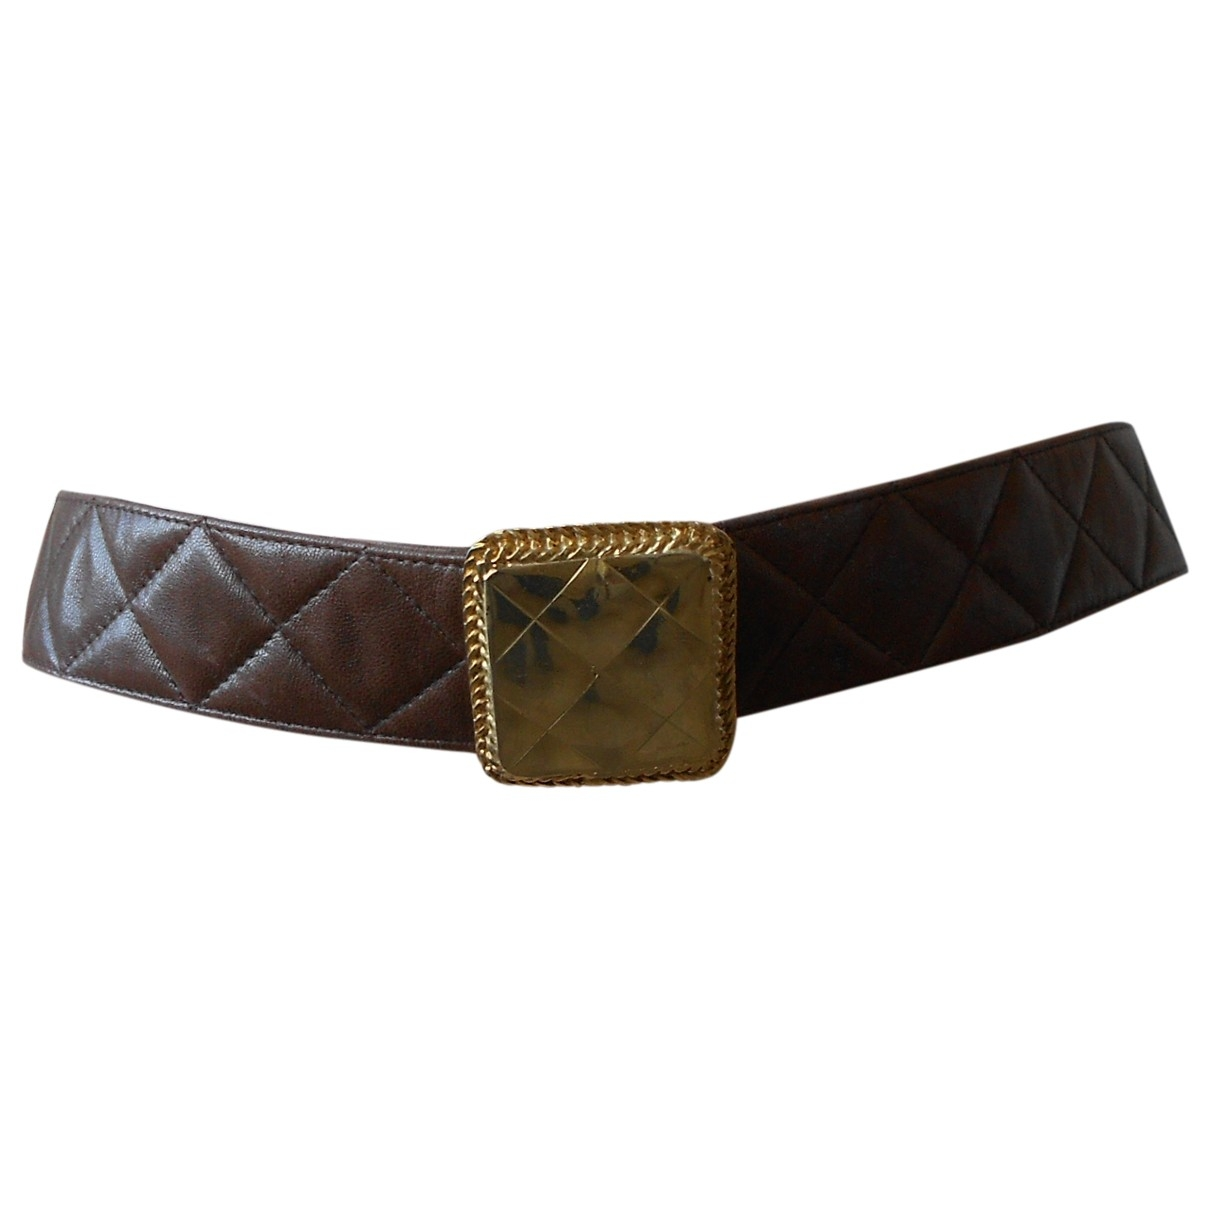 Chanel \N Brown Leather belt for Women 75 cm